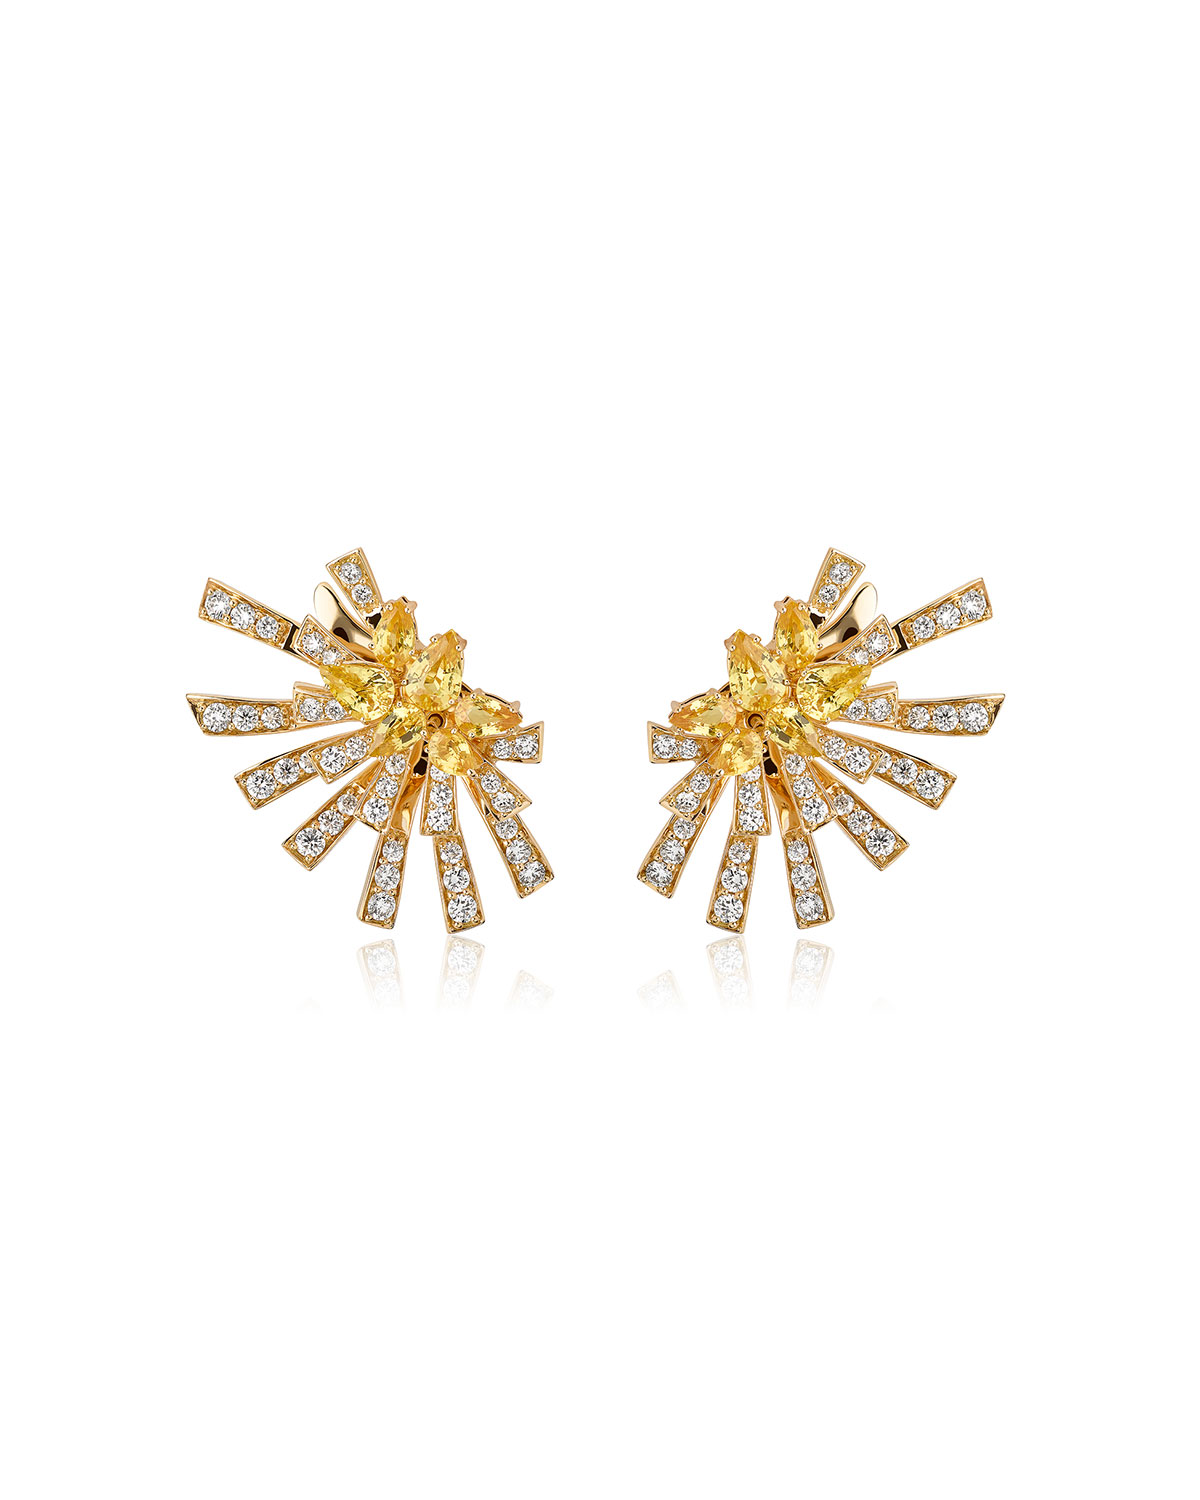 Mirage 18k Yellow Gold Yellow Sapphire and Diamond Cluster Earrings